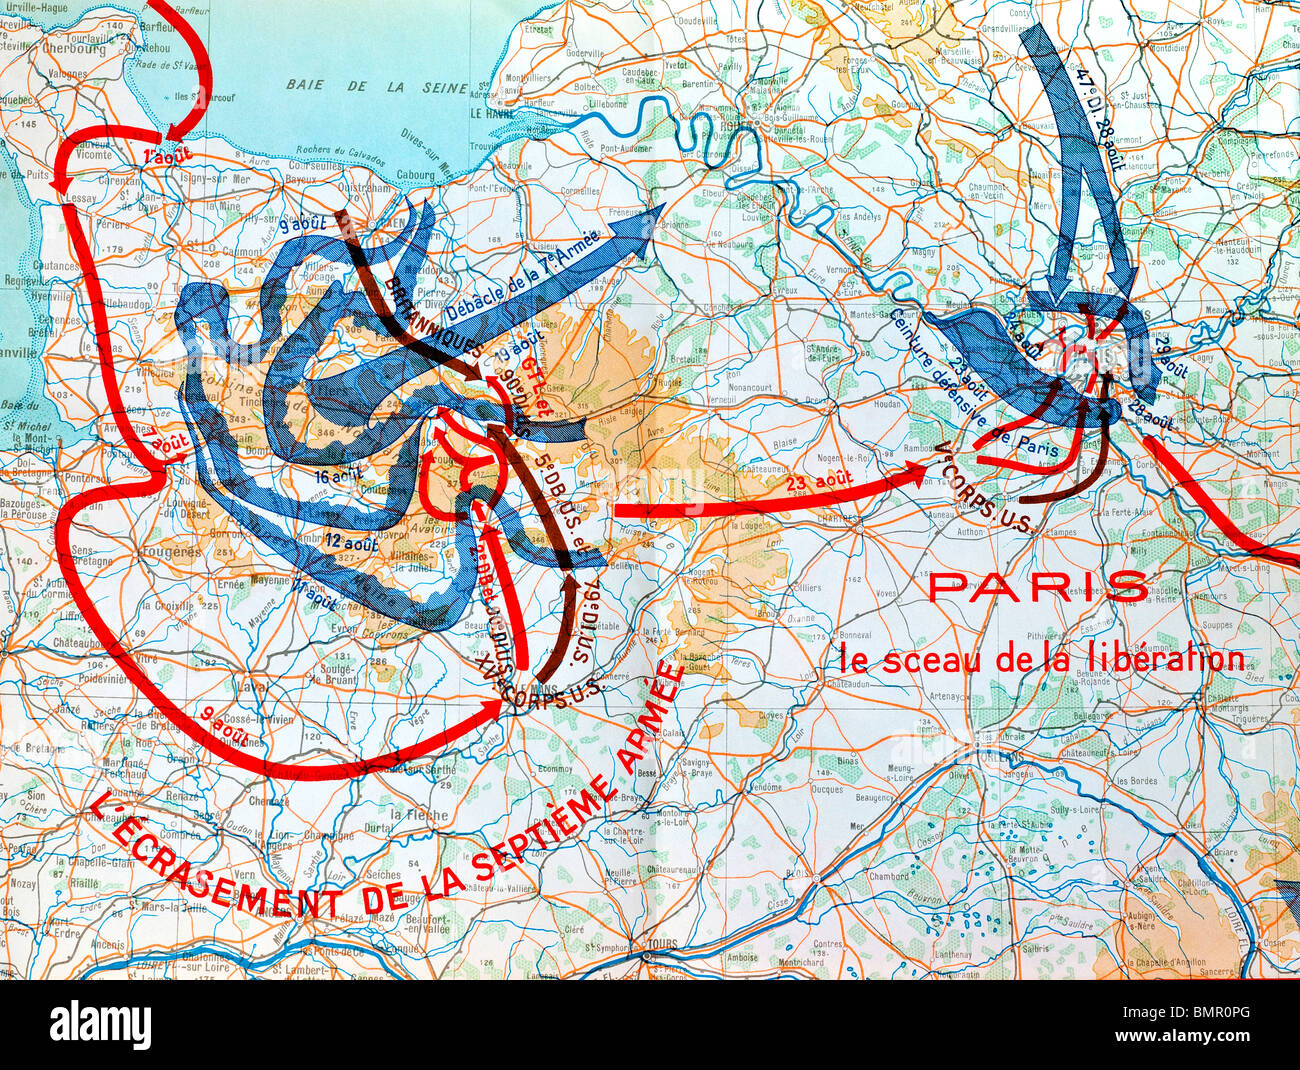 1946 French World War II book map illustration showing Allied army movements from Normandy to Paris, France, 1944. - Stock Image